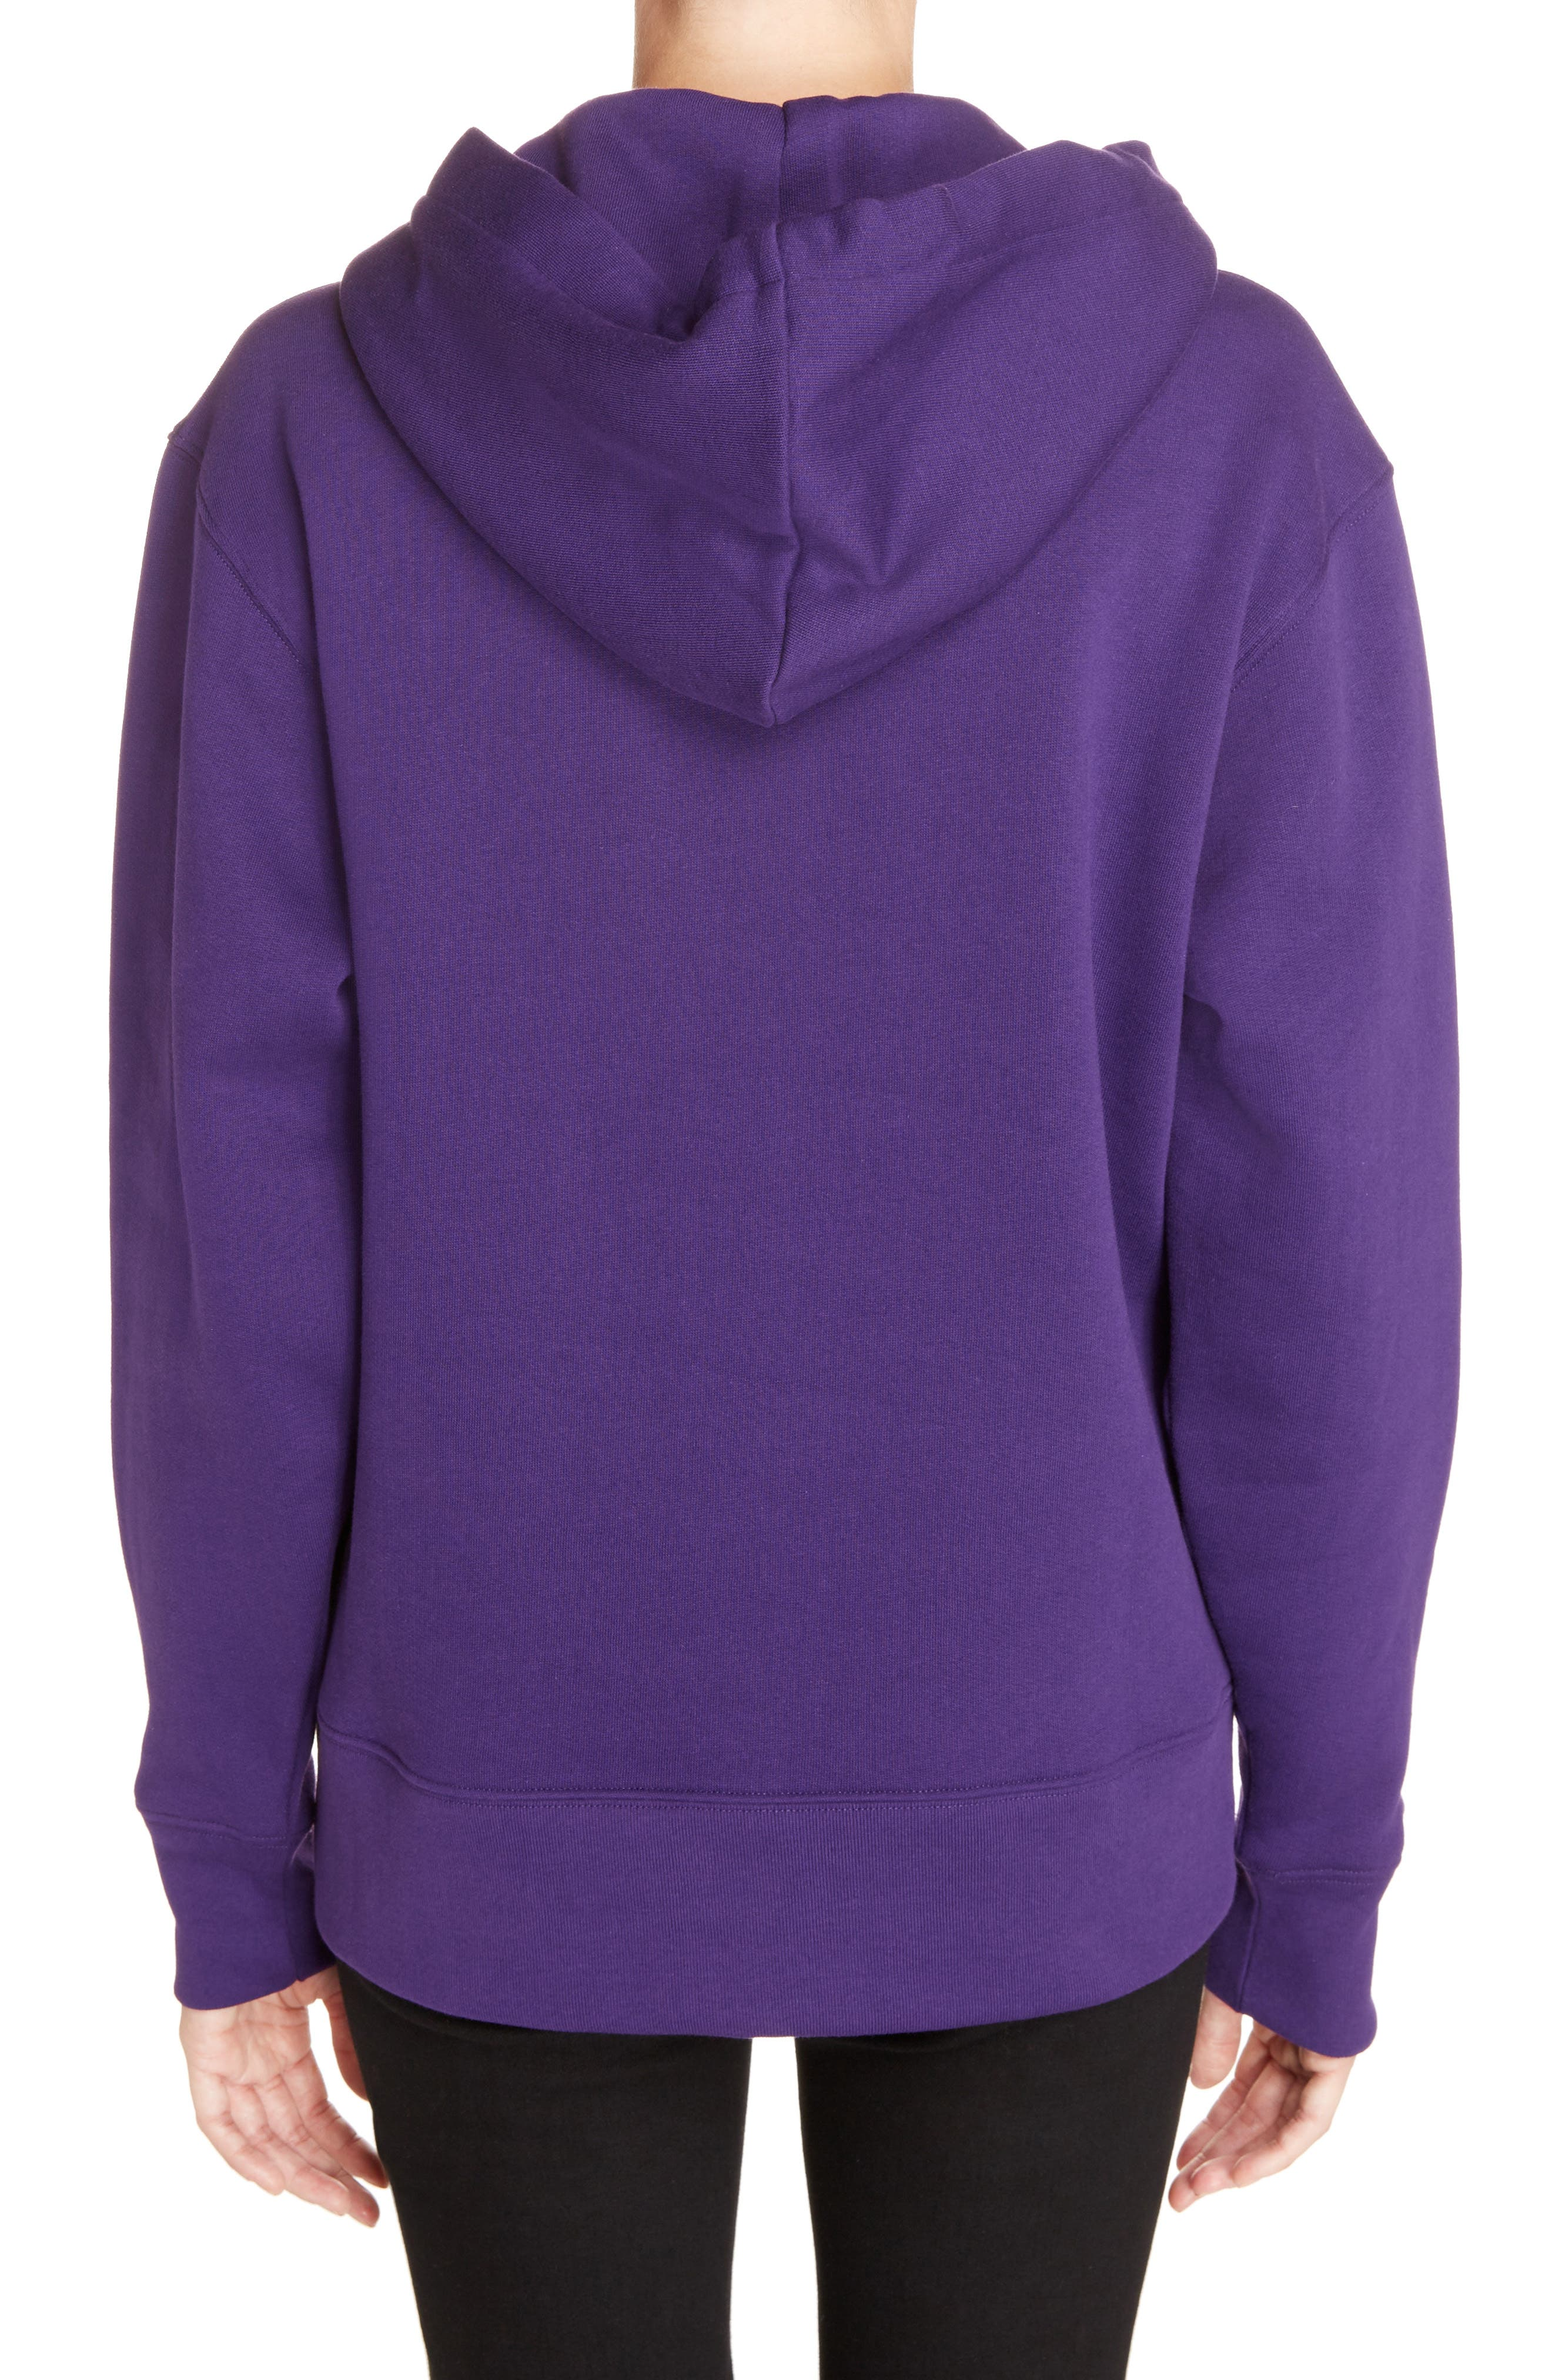 Ferris Face Hoodie,                             Alternate thumbnail 2, color,                             PURPLE